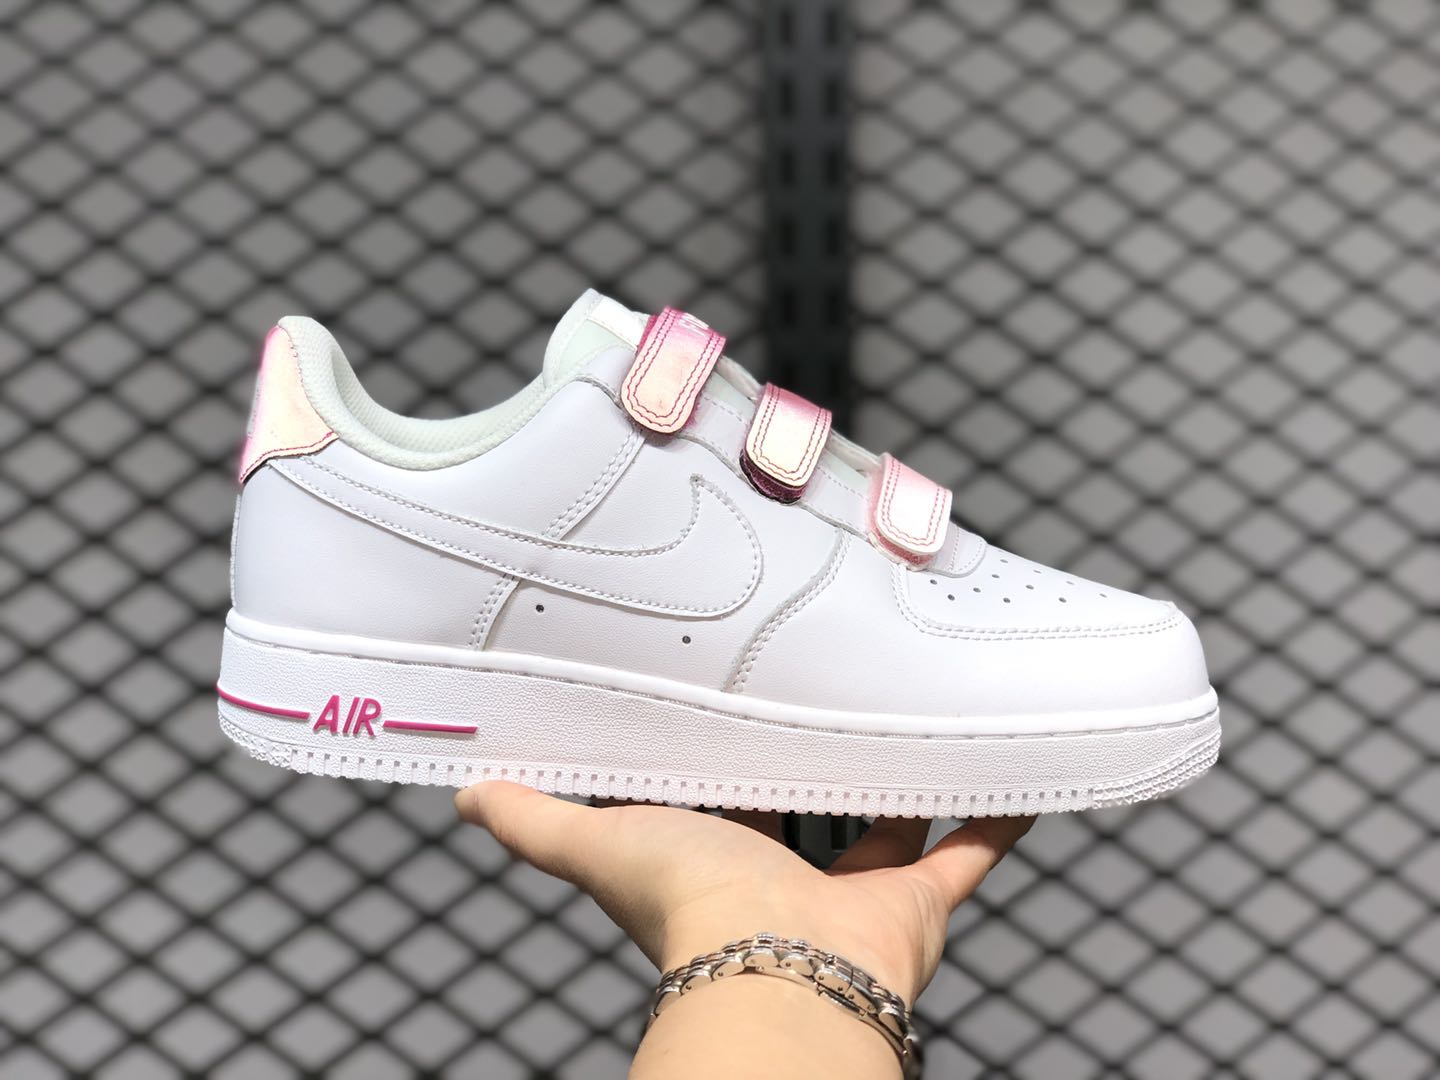 Nike Air Force 1 Low Pink Peach White